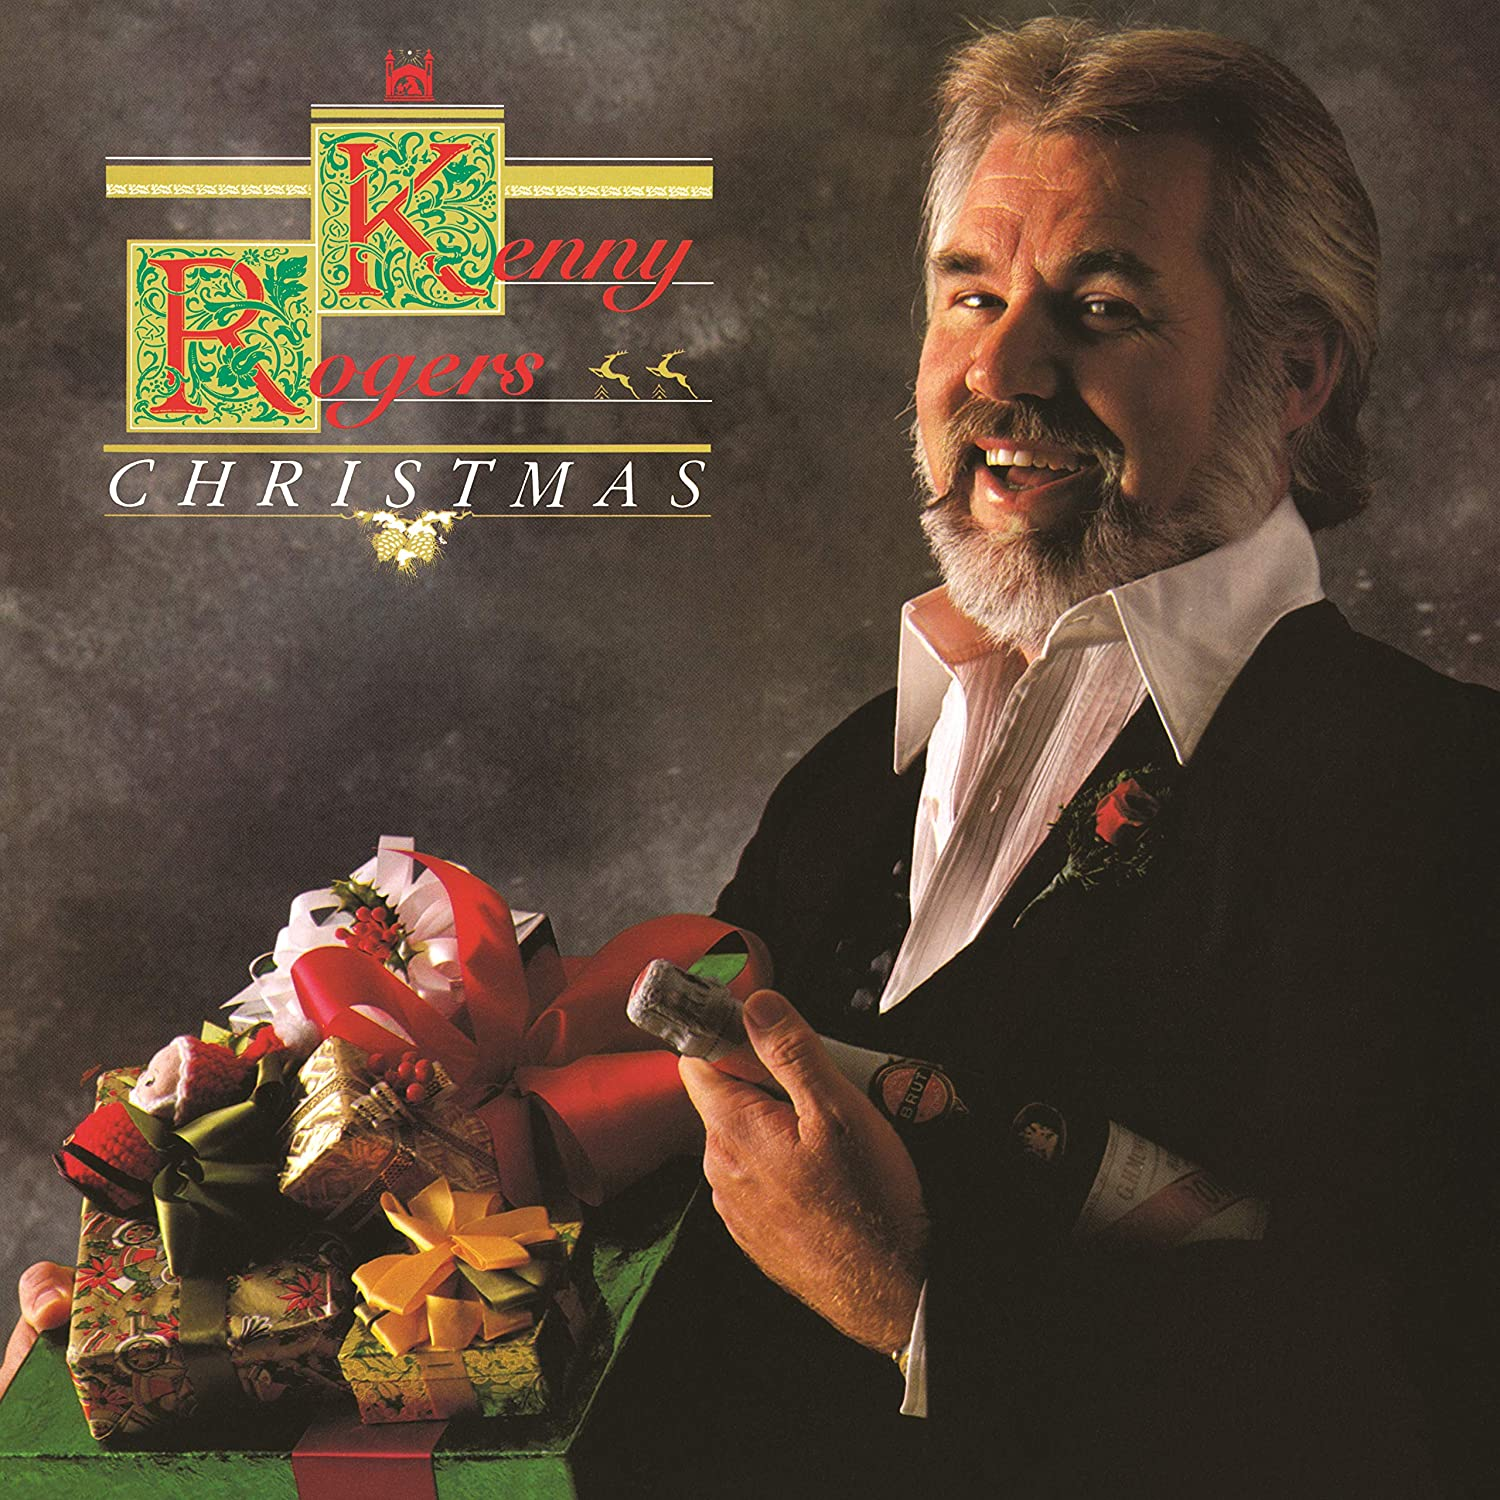 Kenny Rogers - Christmas [LP] - Amazon.com Music